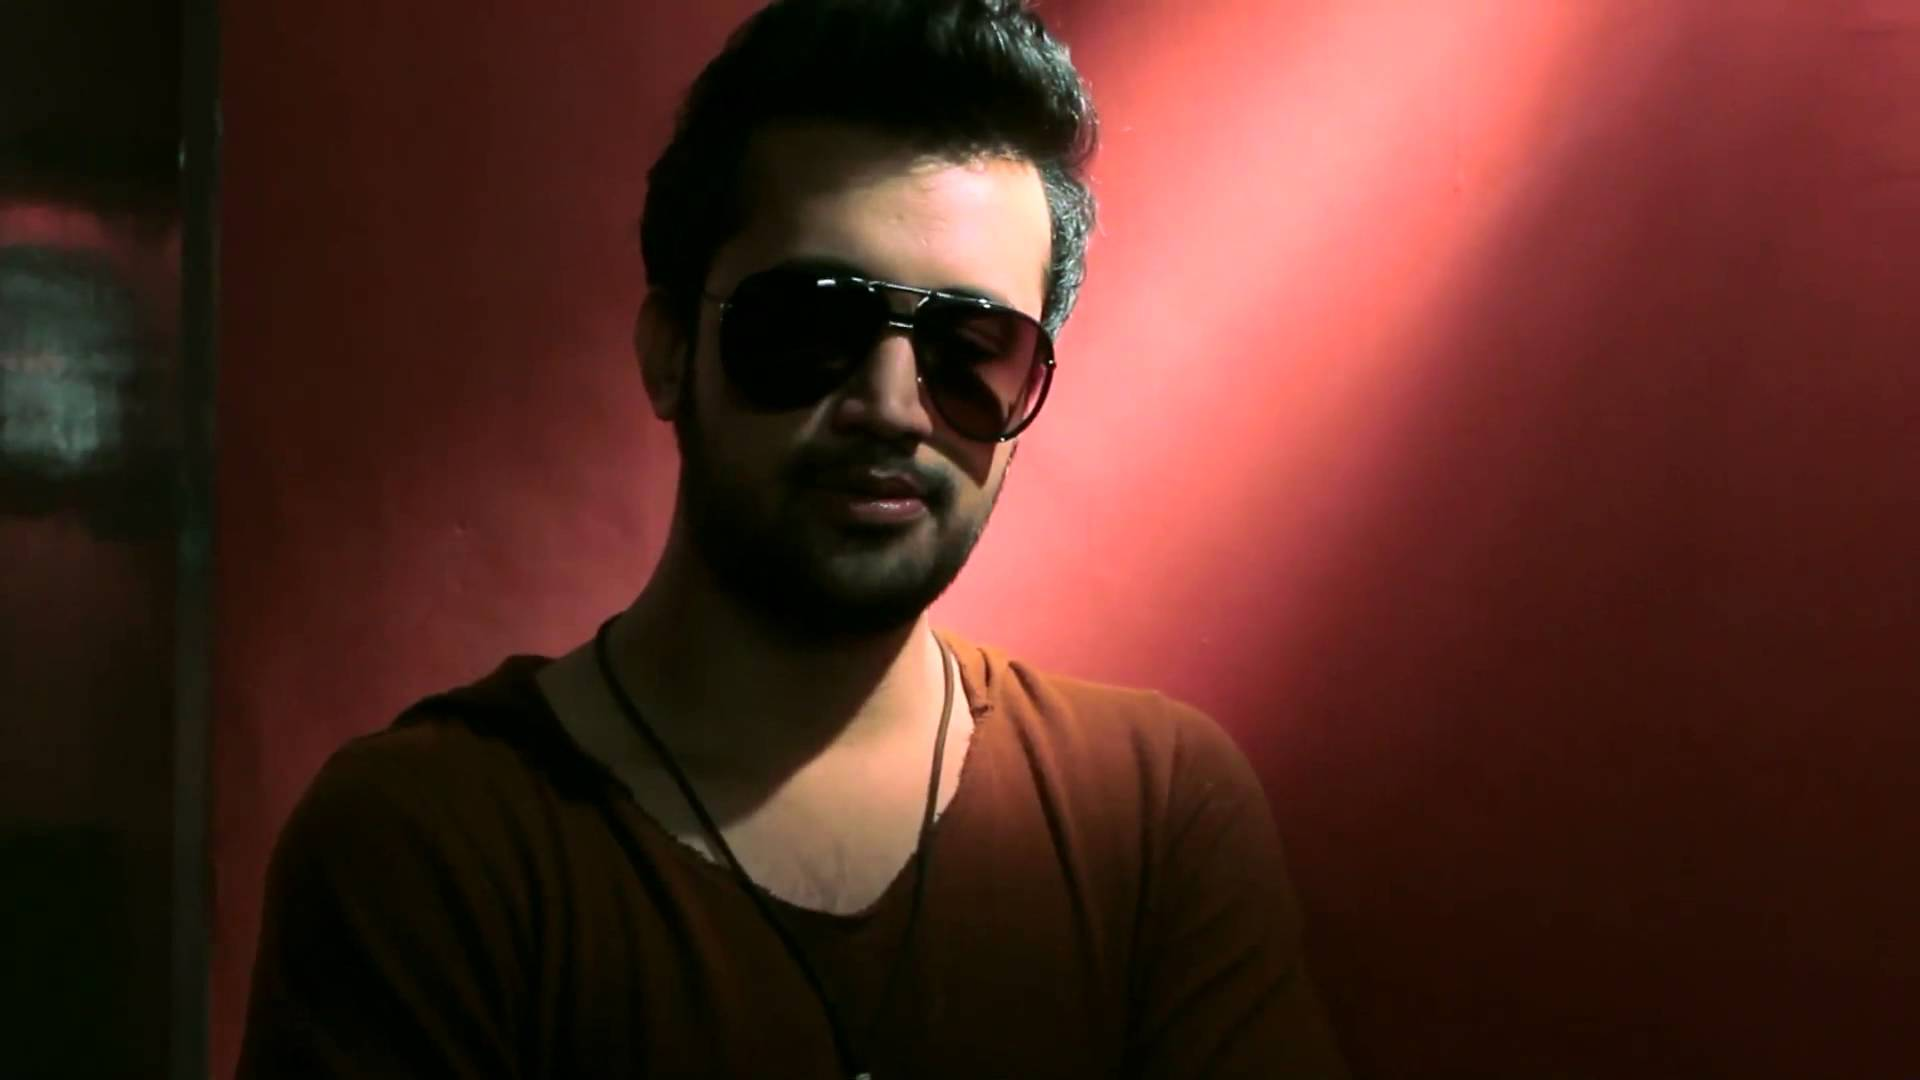 atif aslam Find atif aslam song information on allmusic find atif aslam song information on allmusic allmusic new releases featured atif aslam discography.